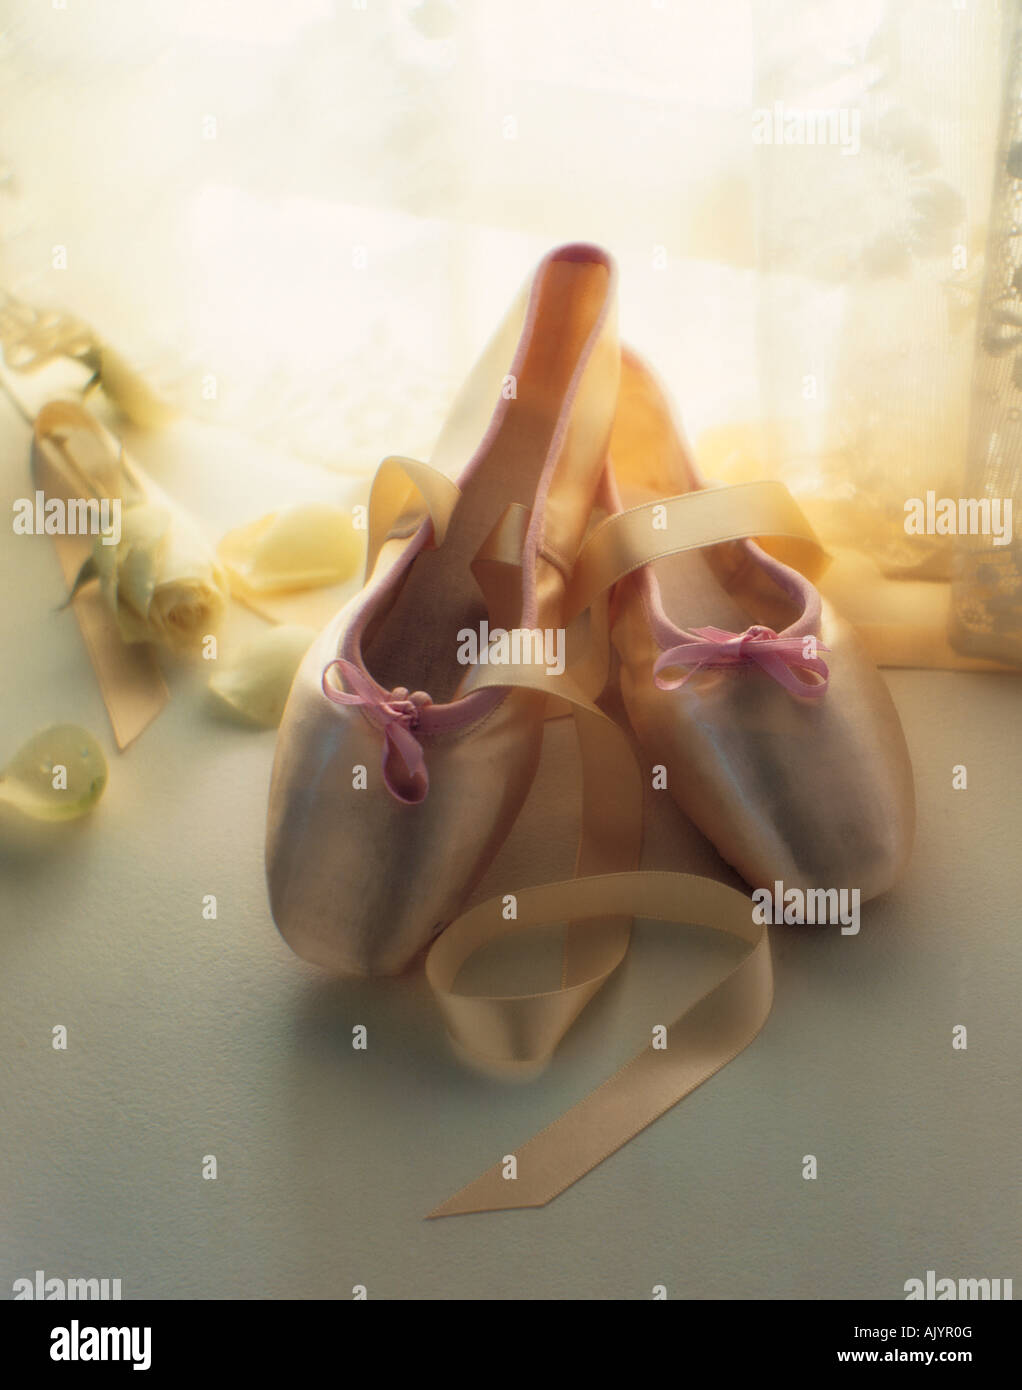 Still life of ballet shoes. - Stock Image